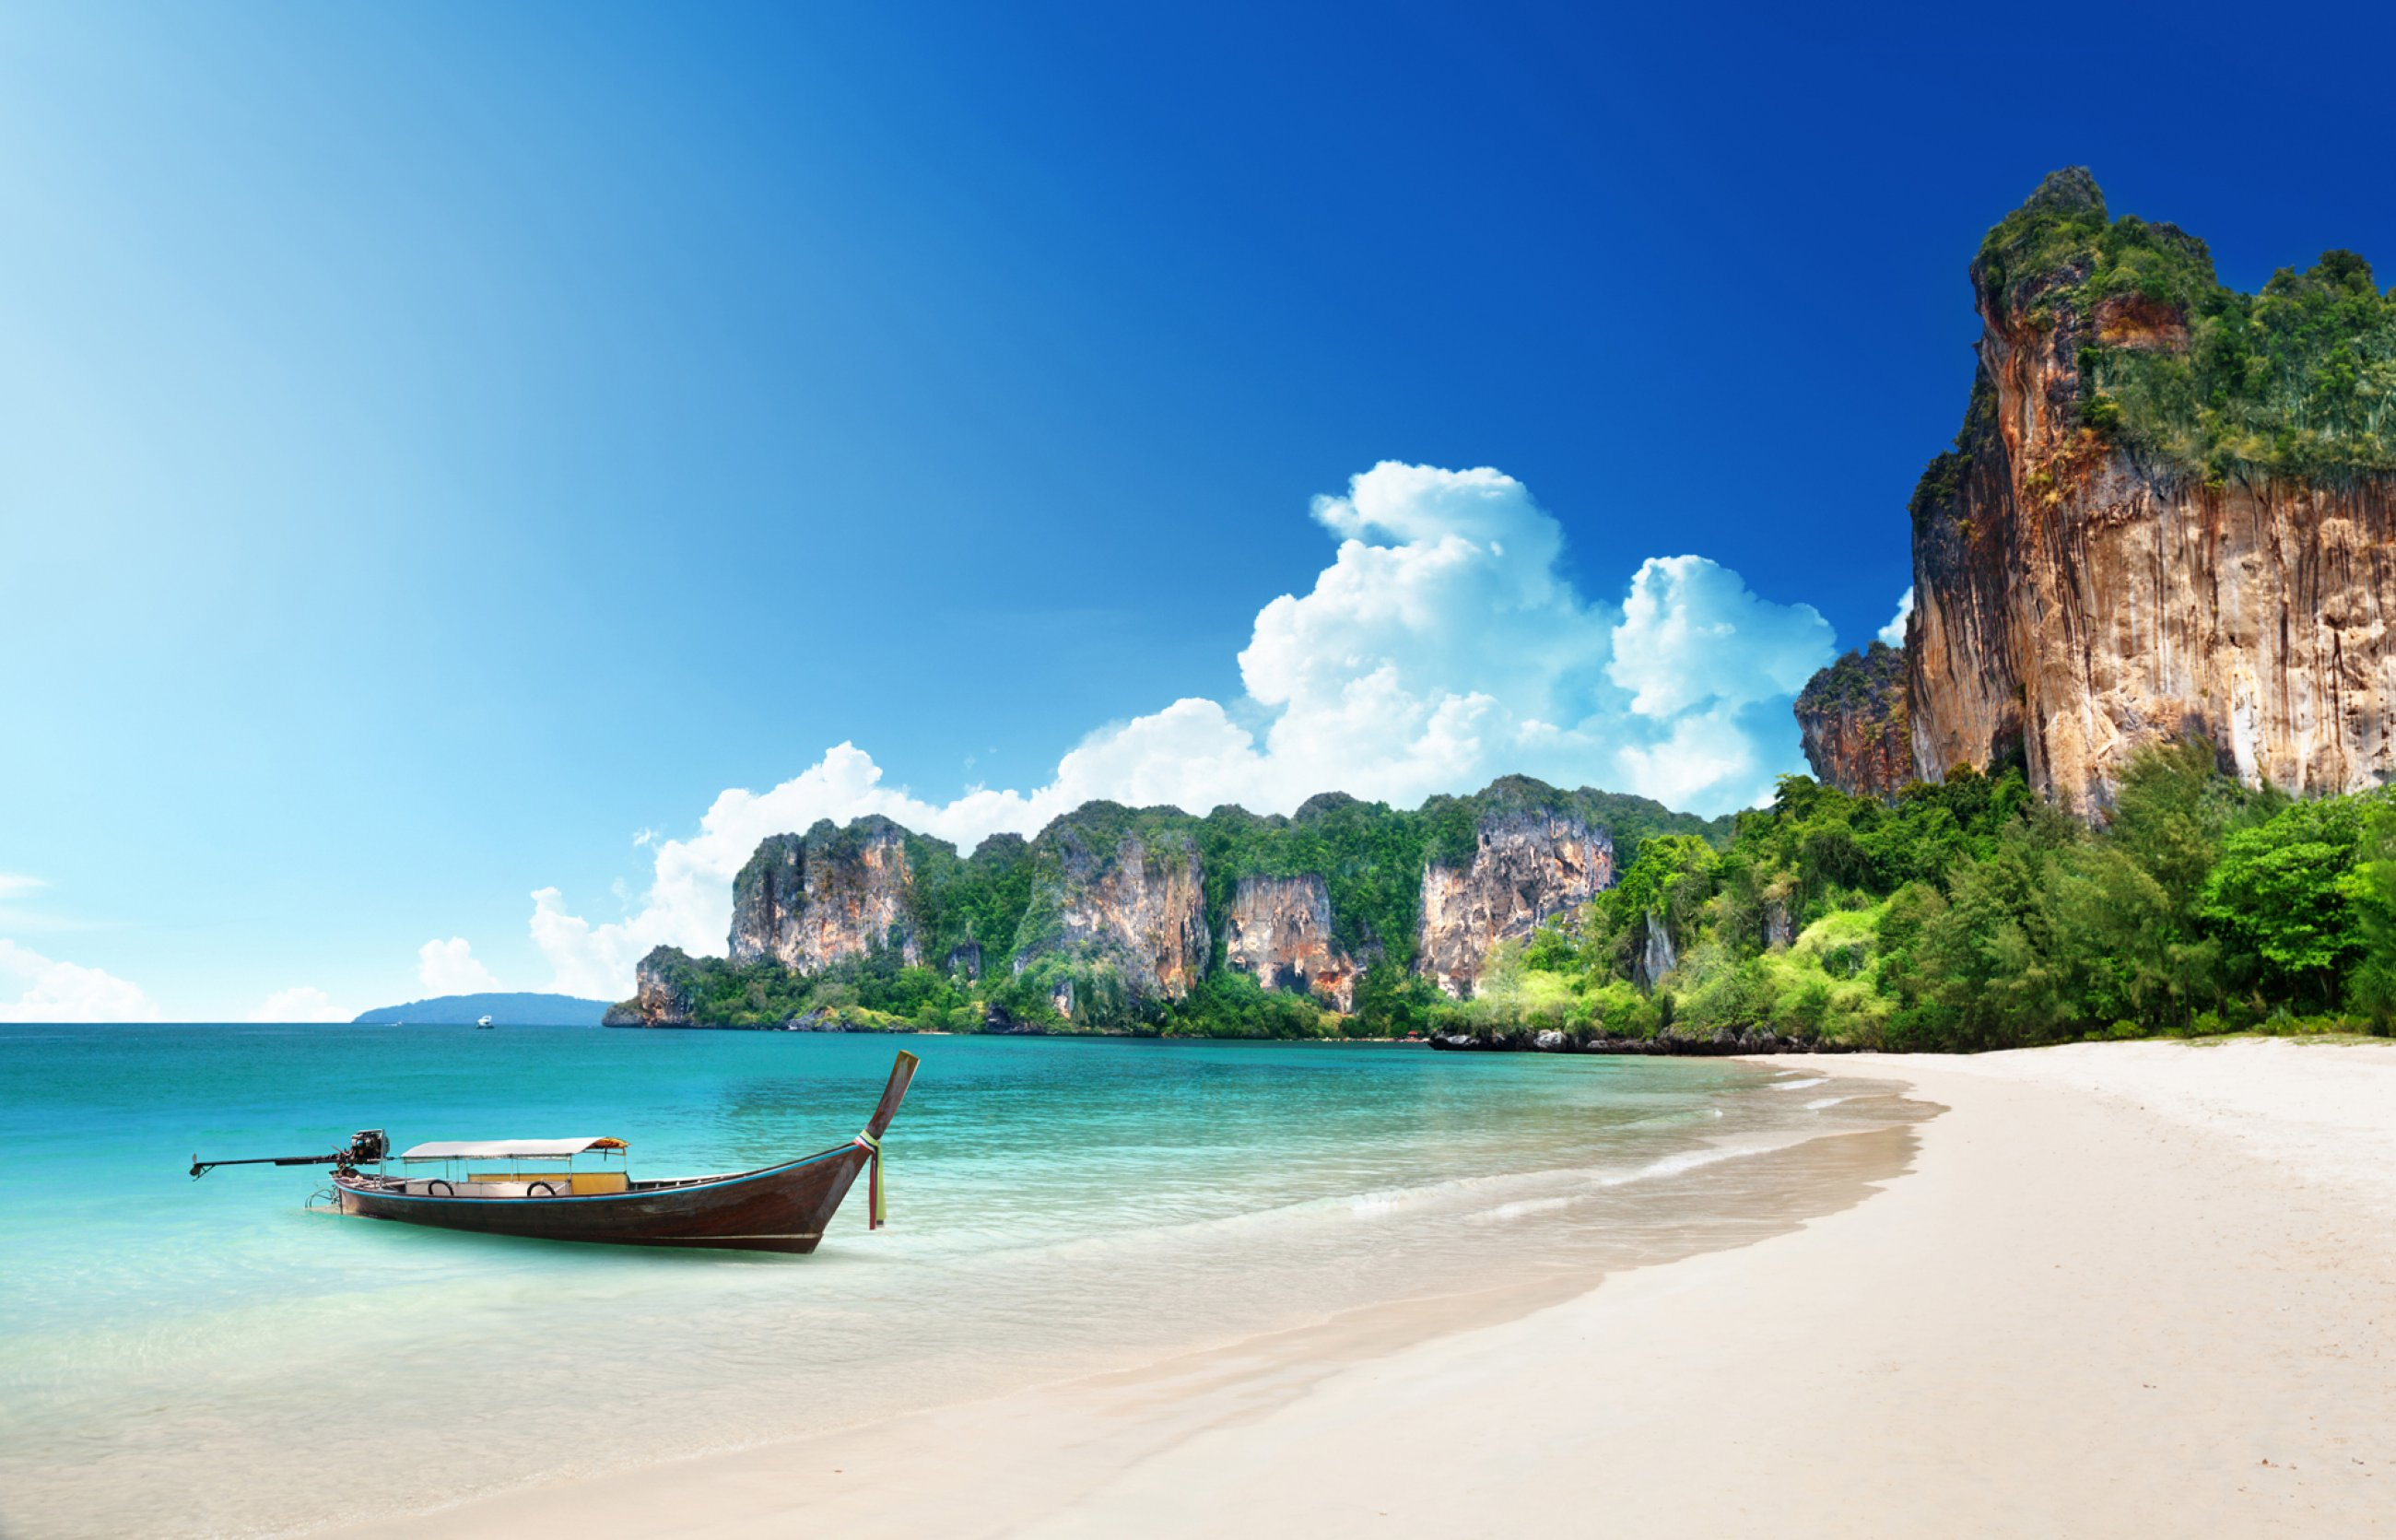 https://bubo.sk/uploads/galleries/5060/krabi-thajsko-railay-beach-dreamstime-xl-28775974.jpg